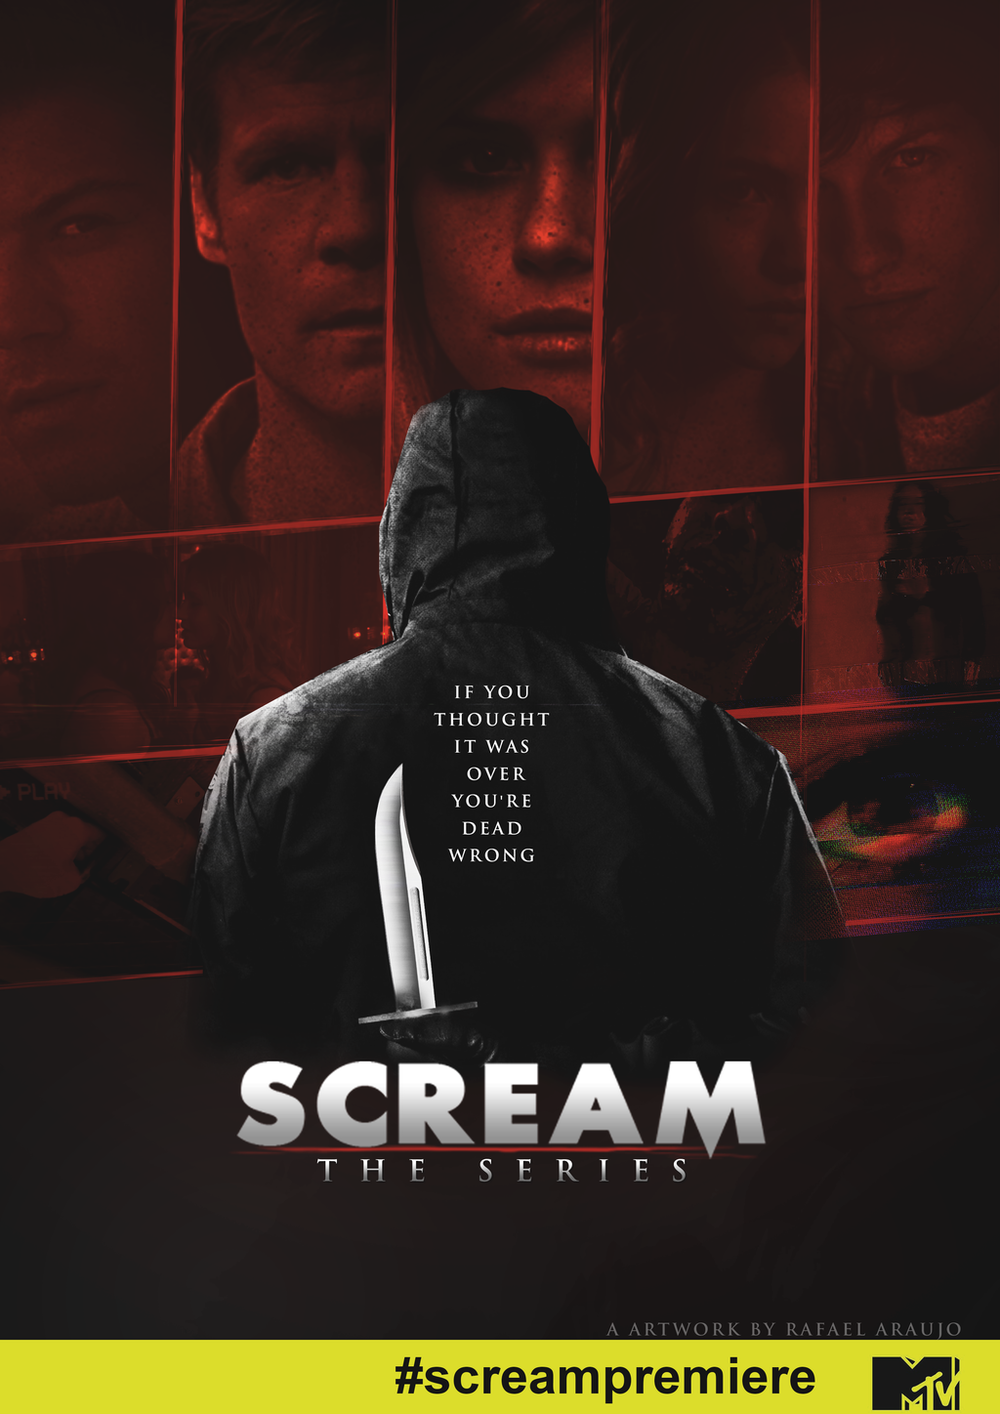 scream-series-trailer-you-cant-do-a-slasher-movie-as-a-tv-series